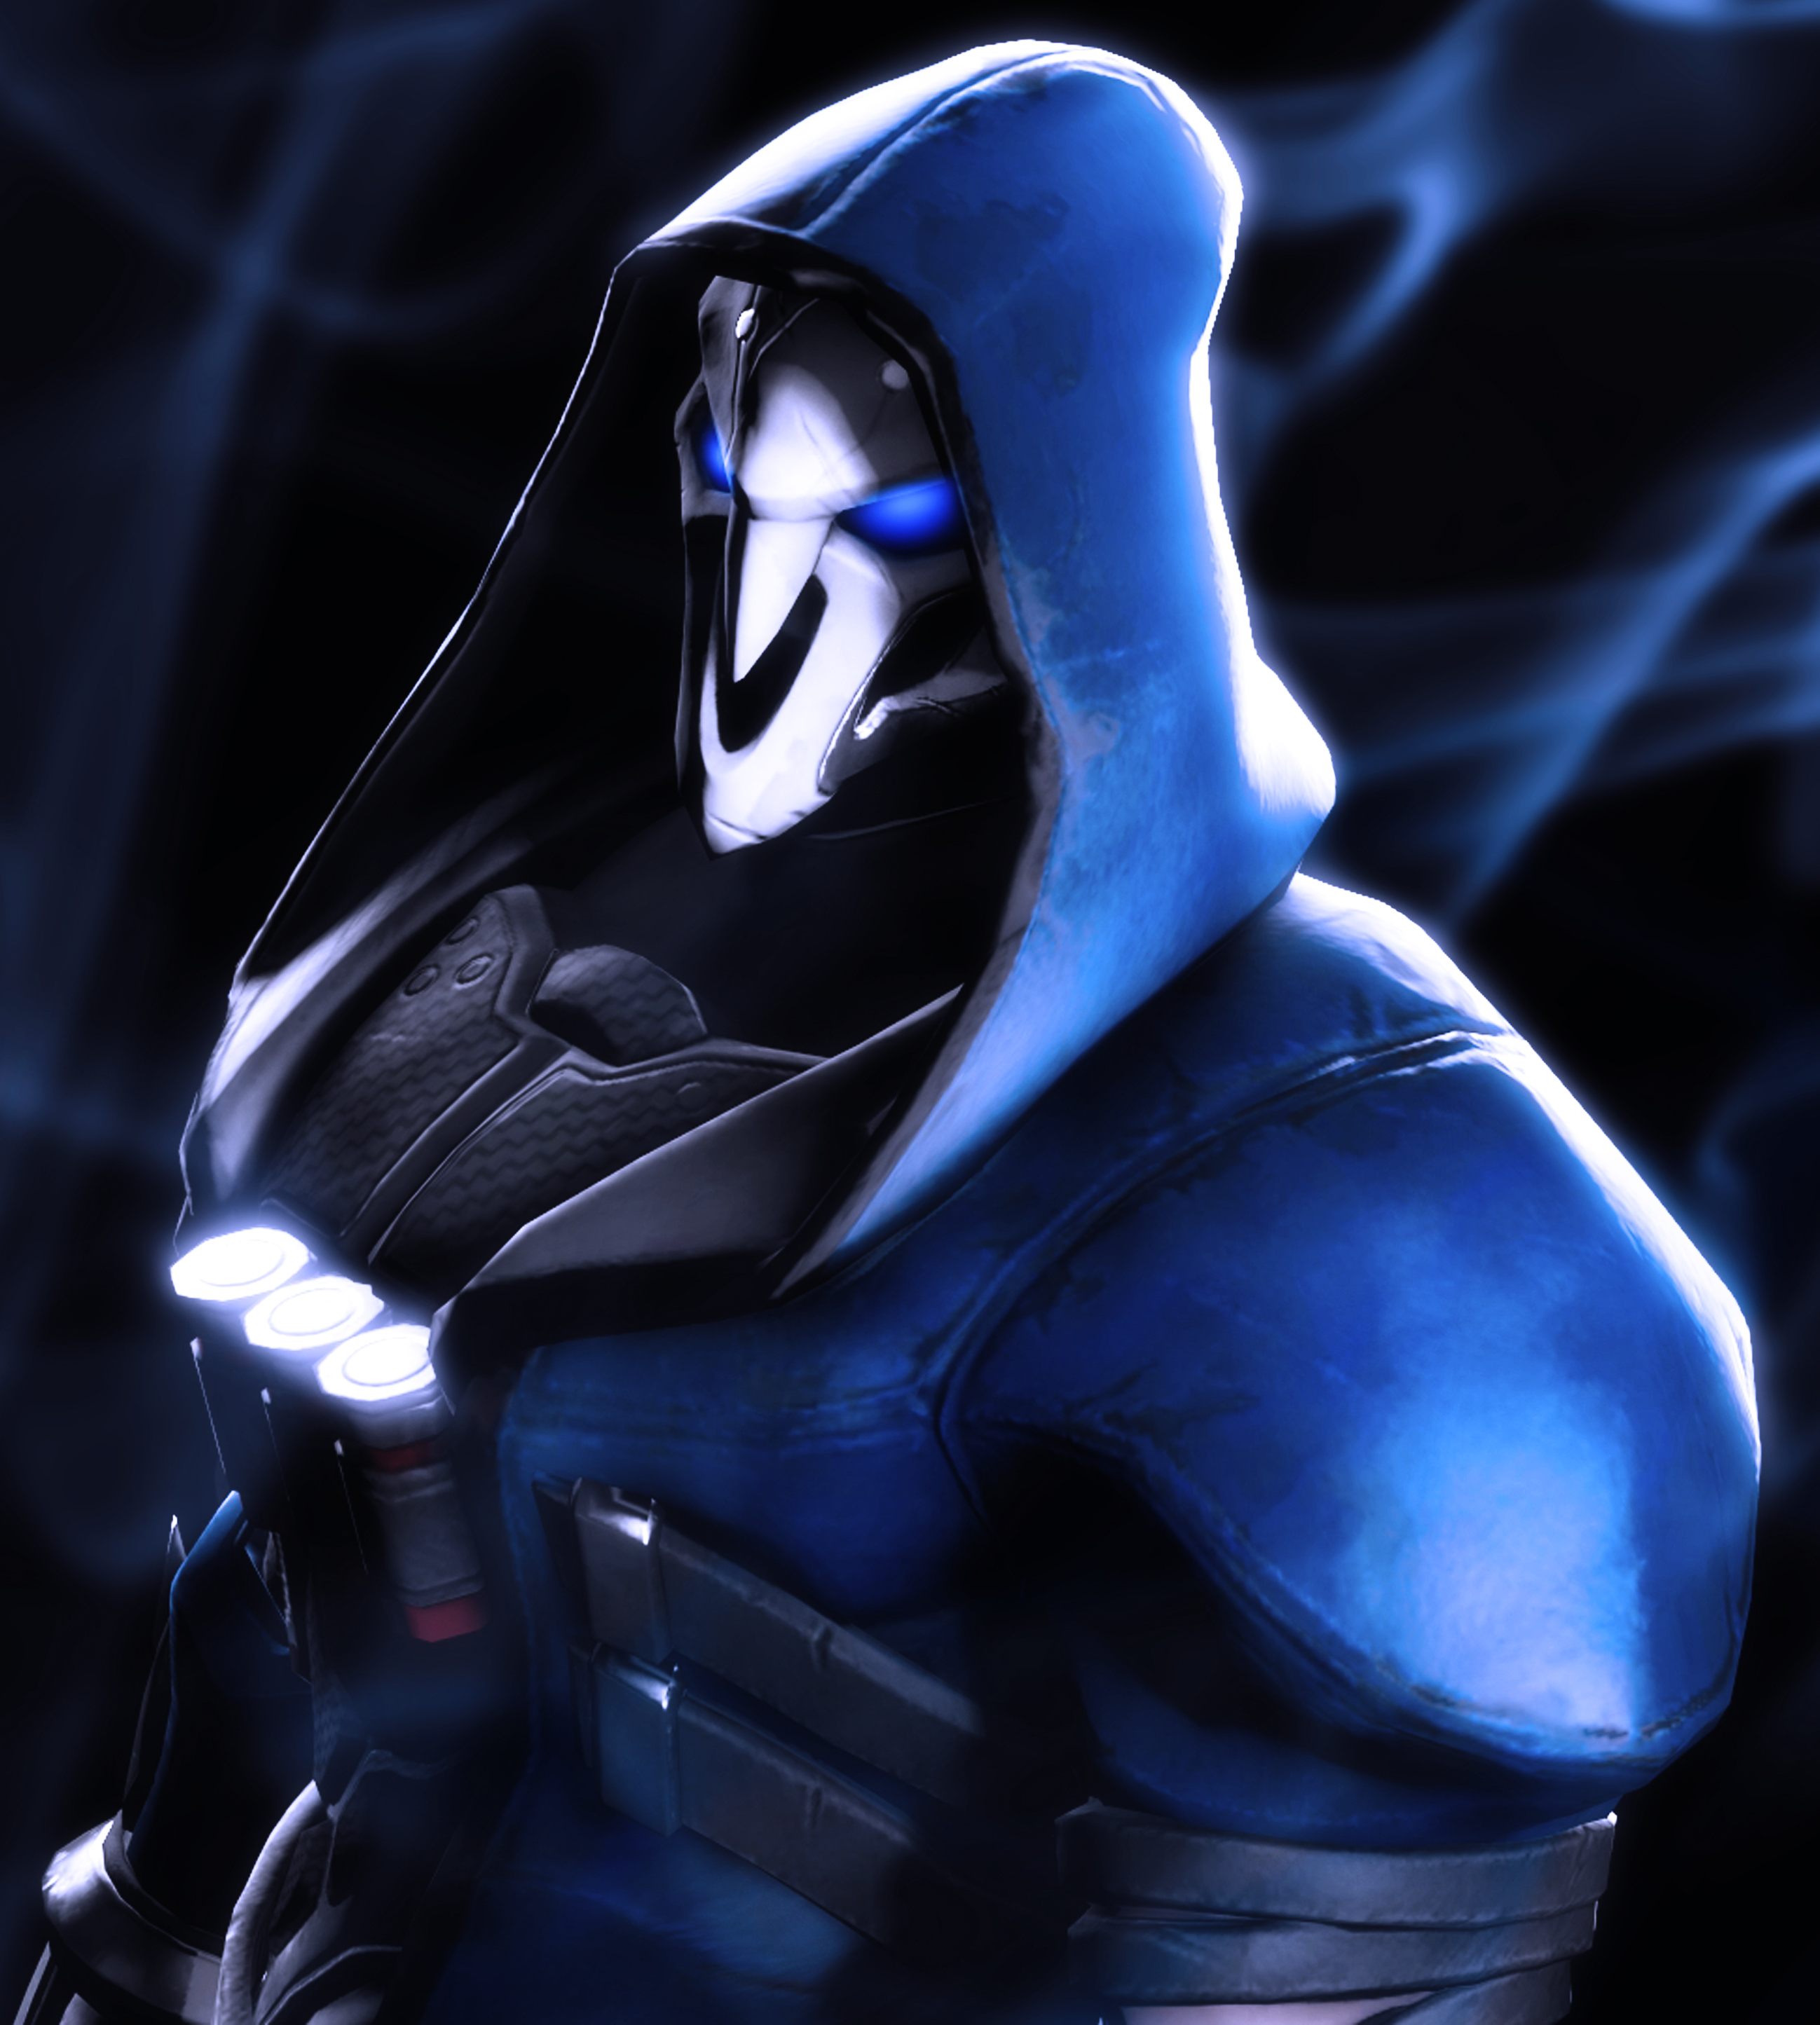 Its-Midnight-Reaper's Profile Picture